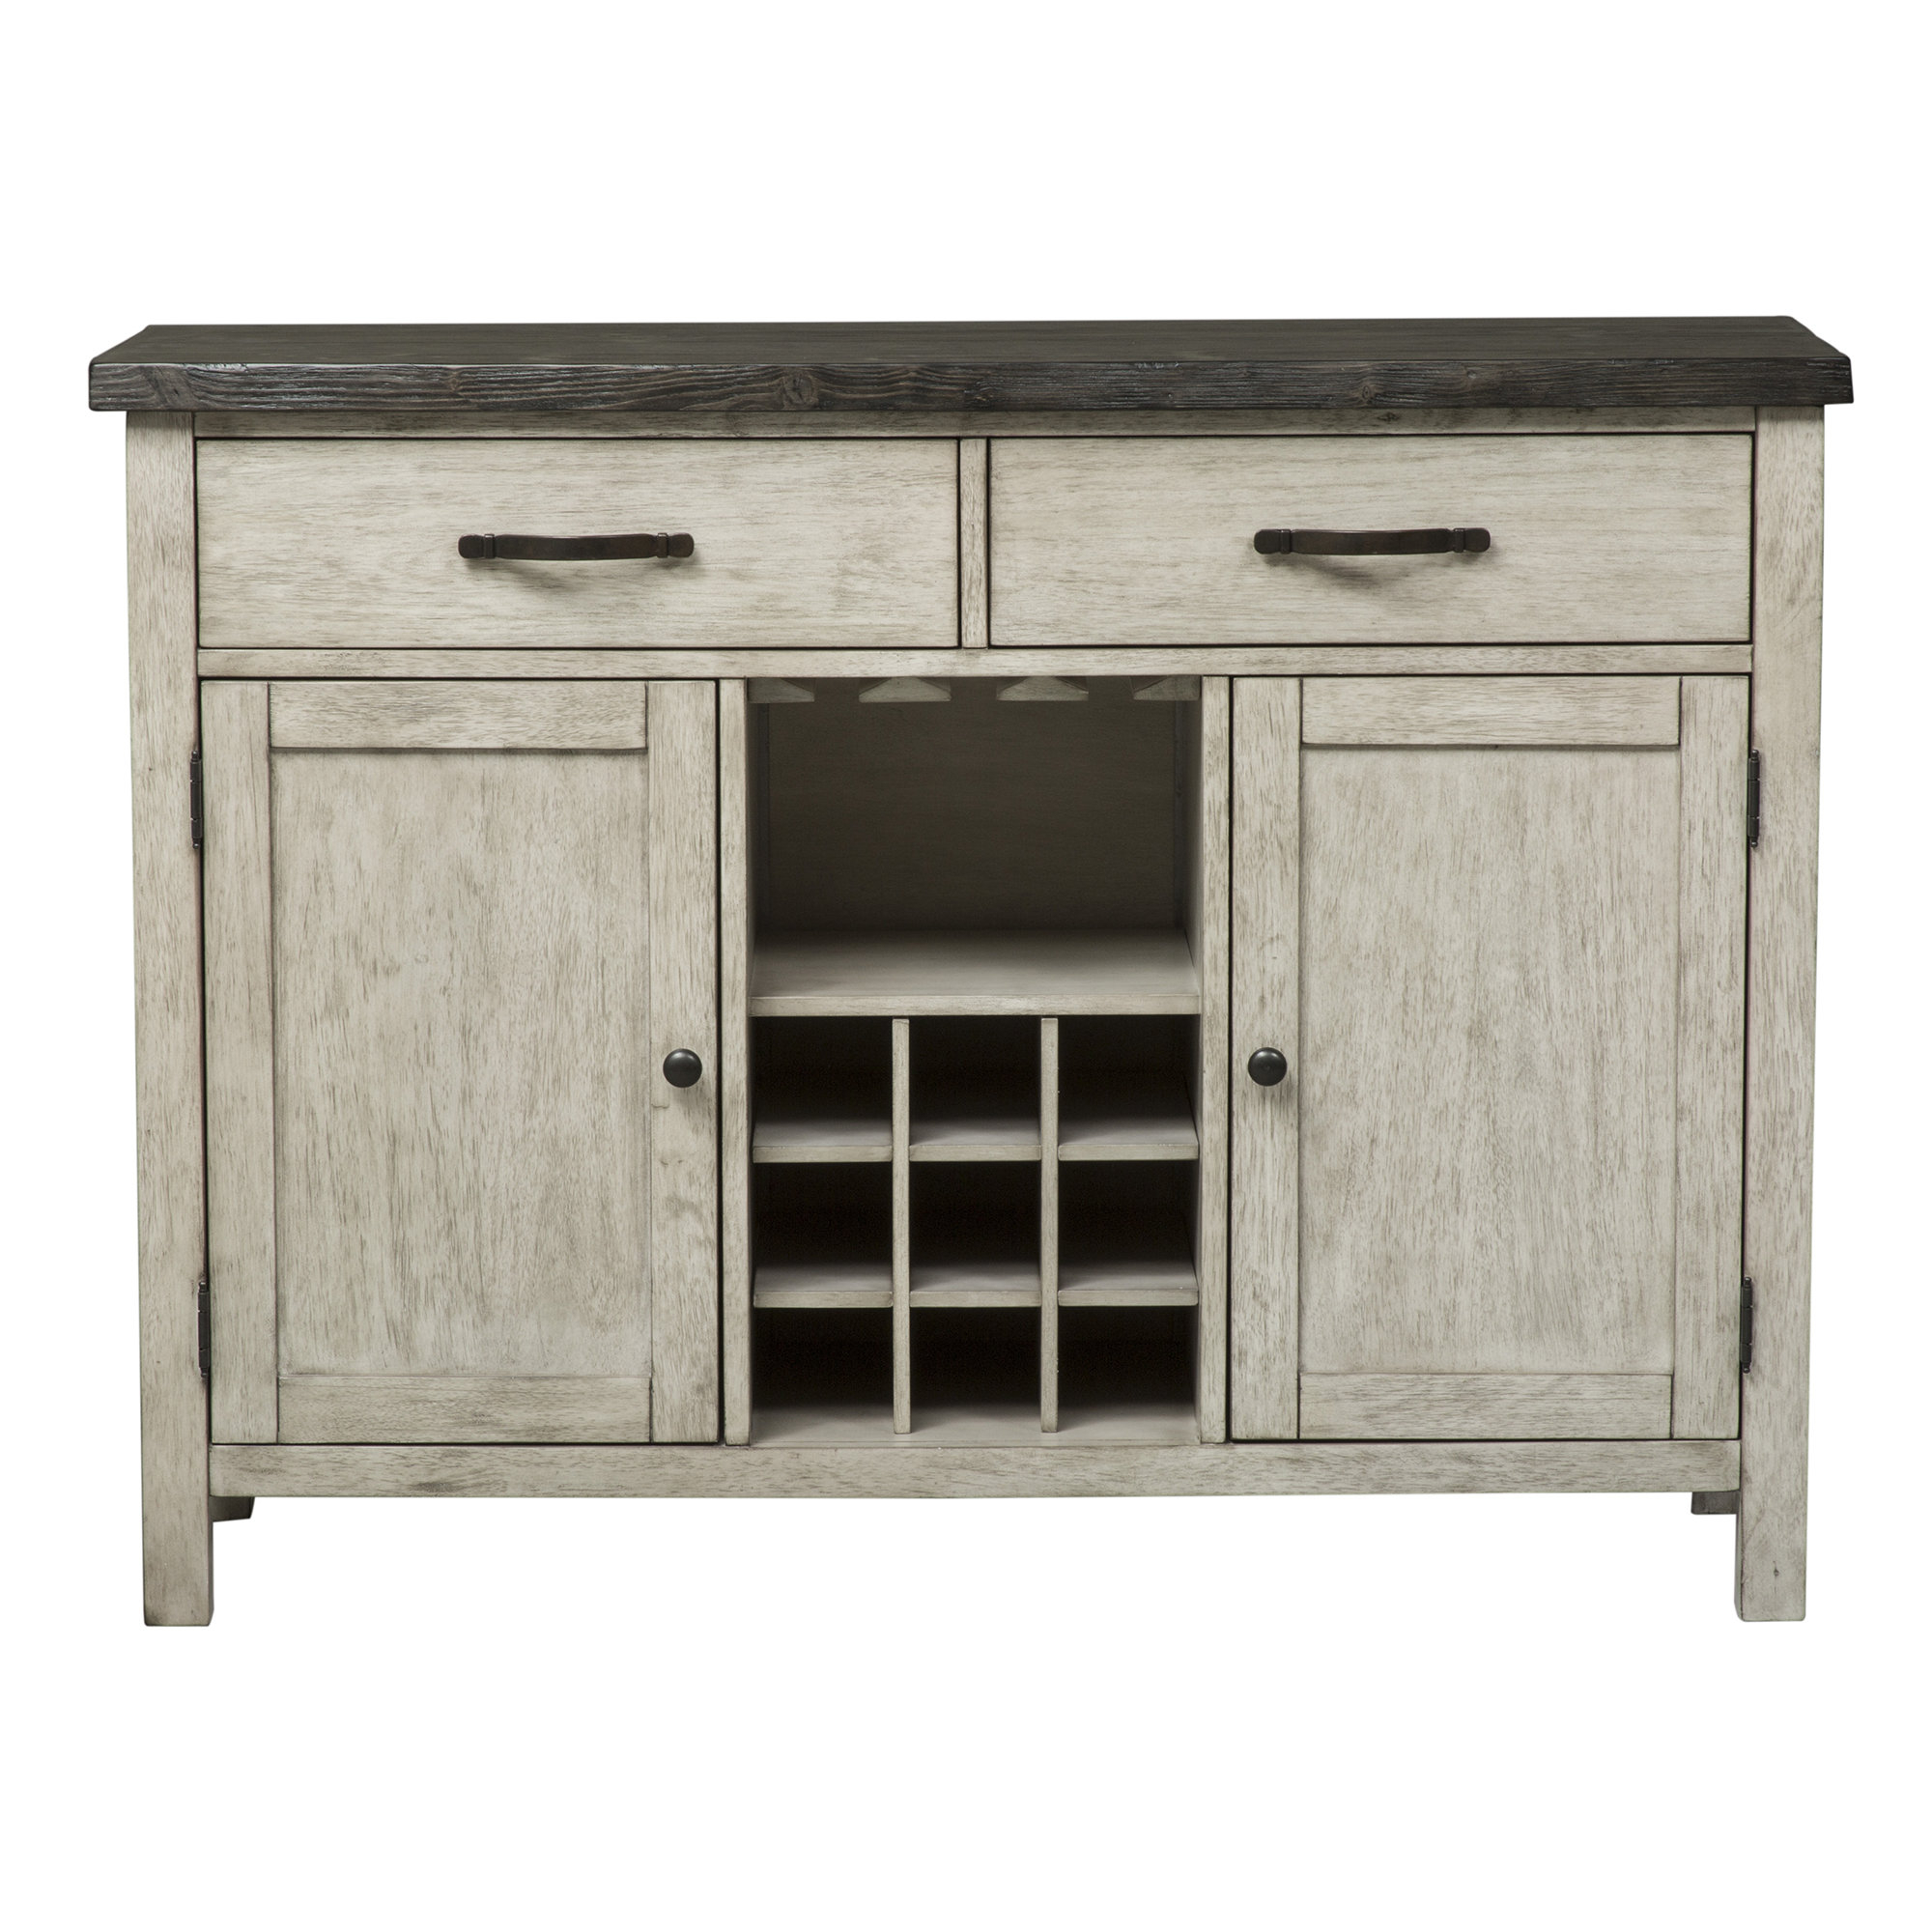 Gray Wood Sideboards & Buffets | Joss & Main For Most Current Cazenovia Charnley Sideboards (#10 of 20)